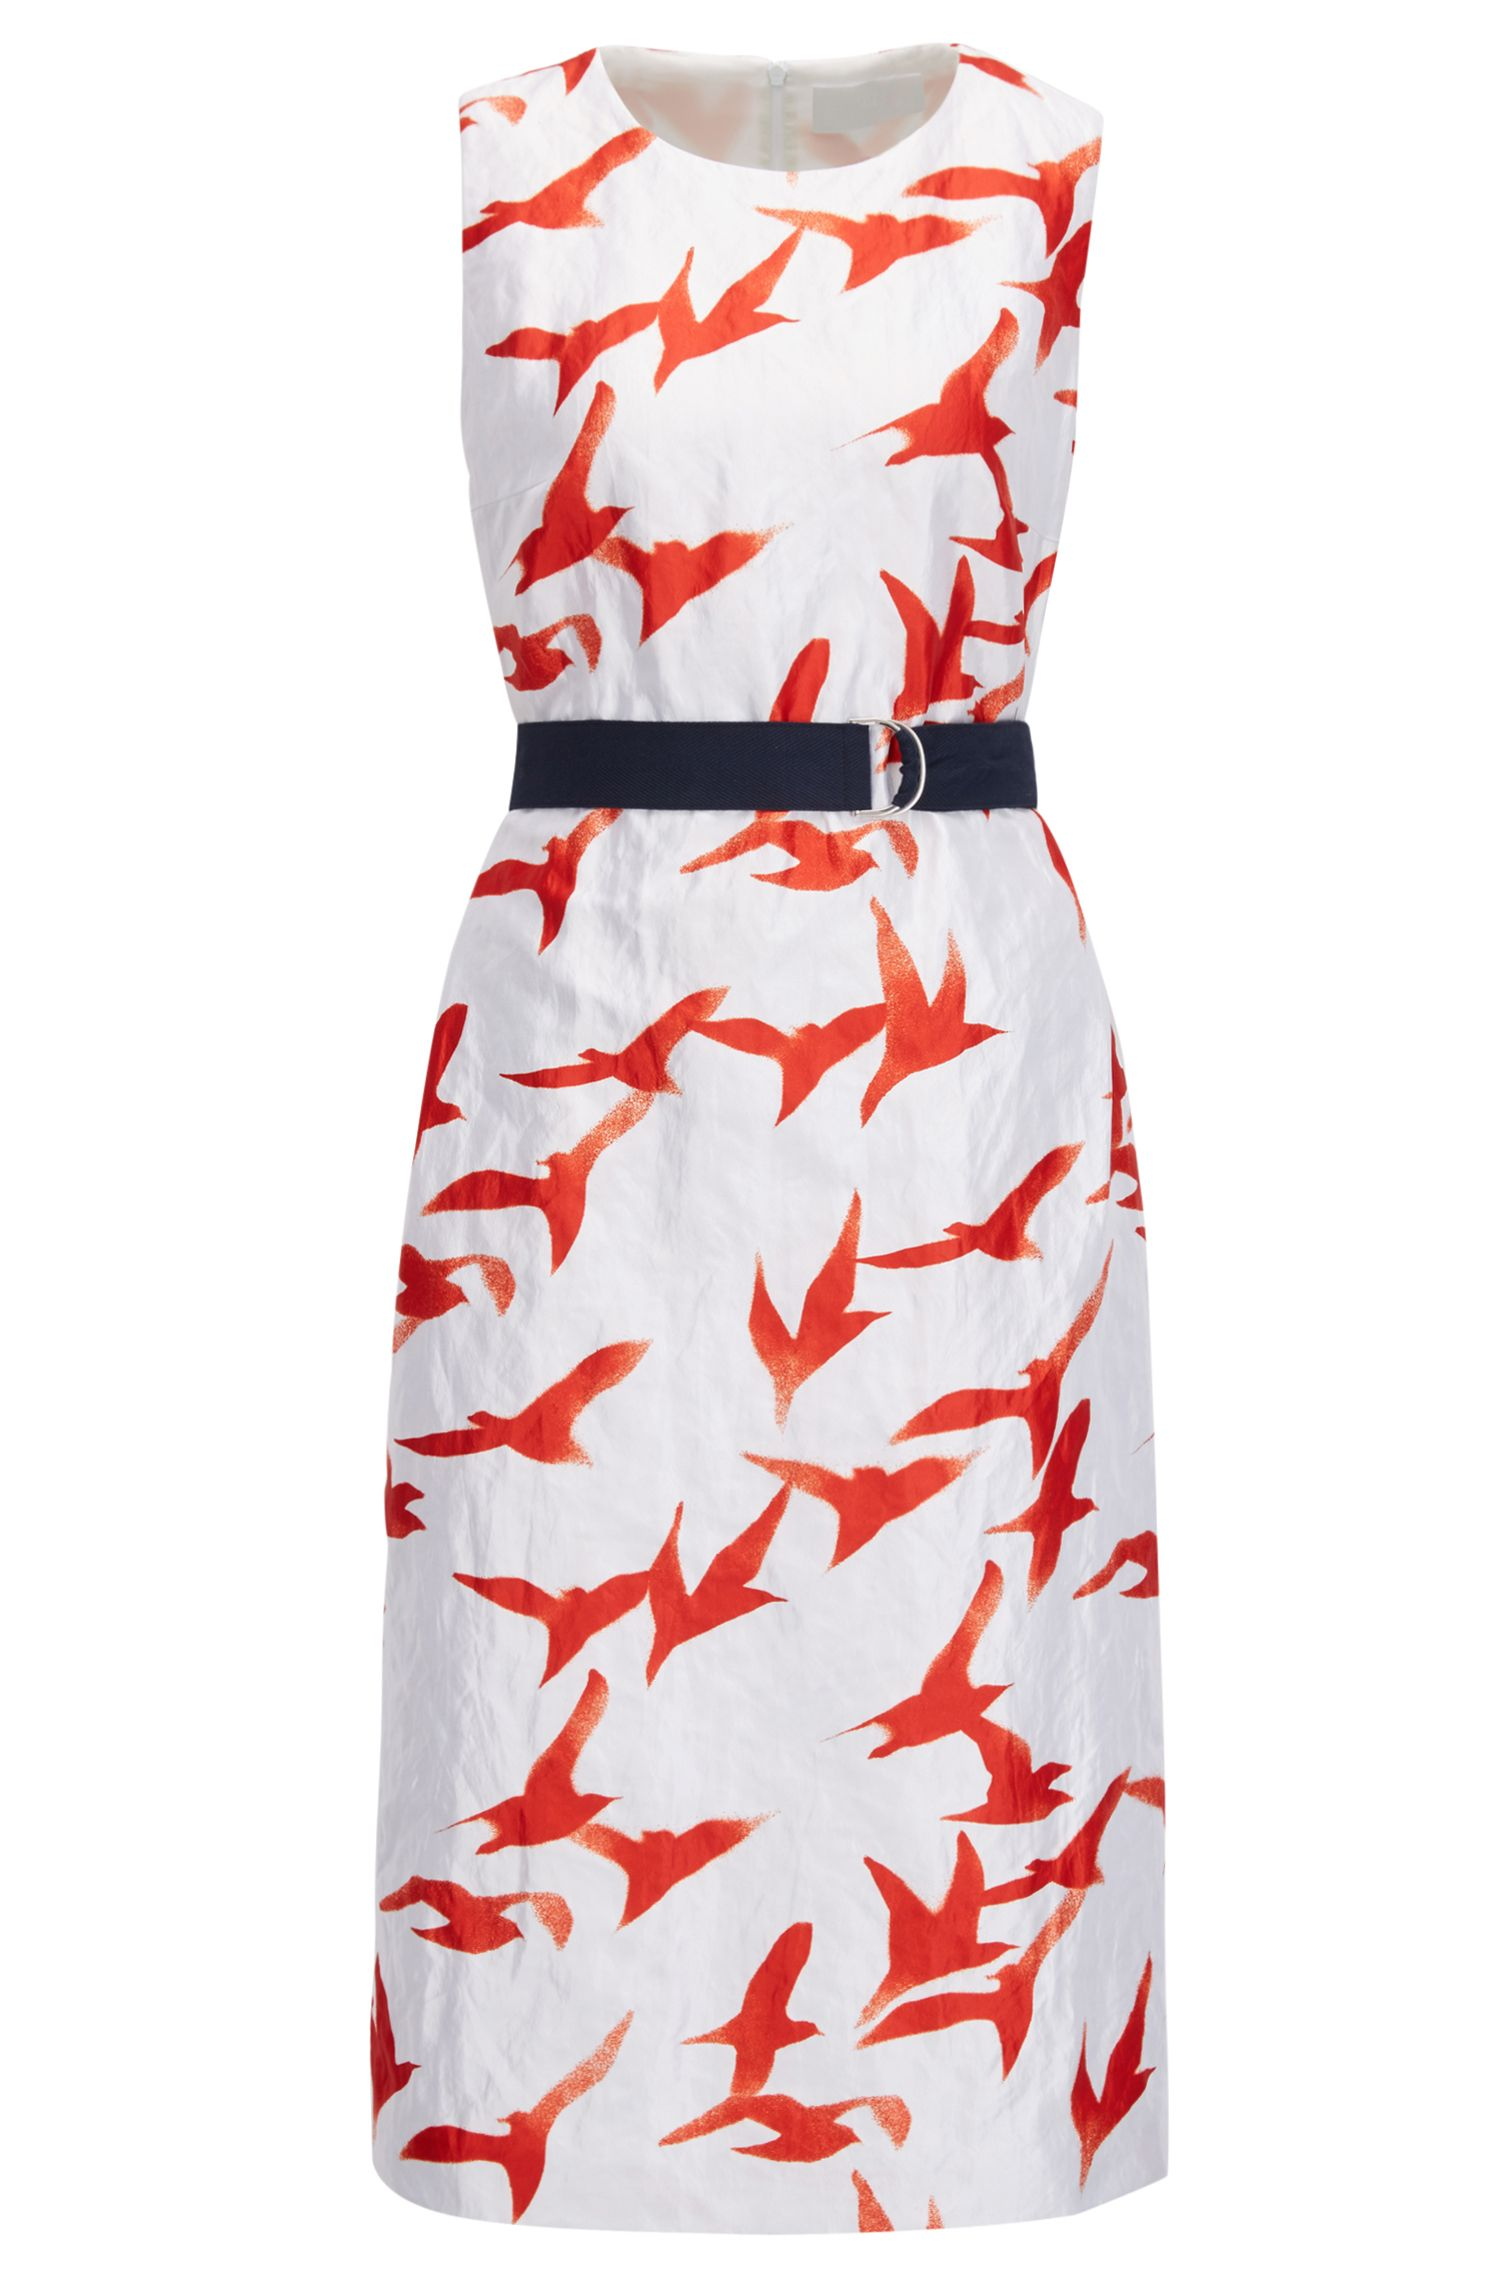 Twill shift dress with seagull print